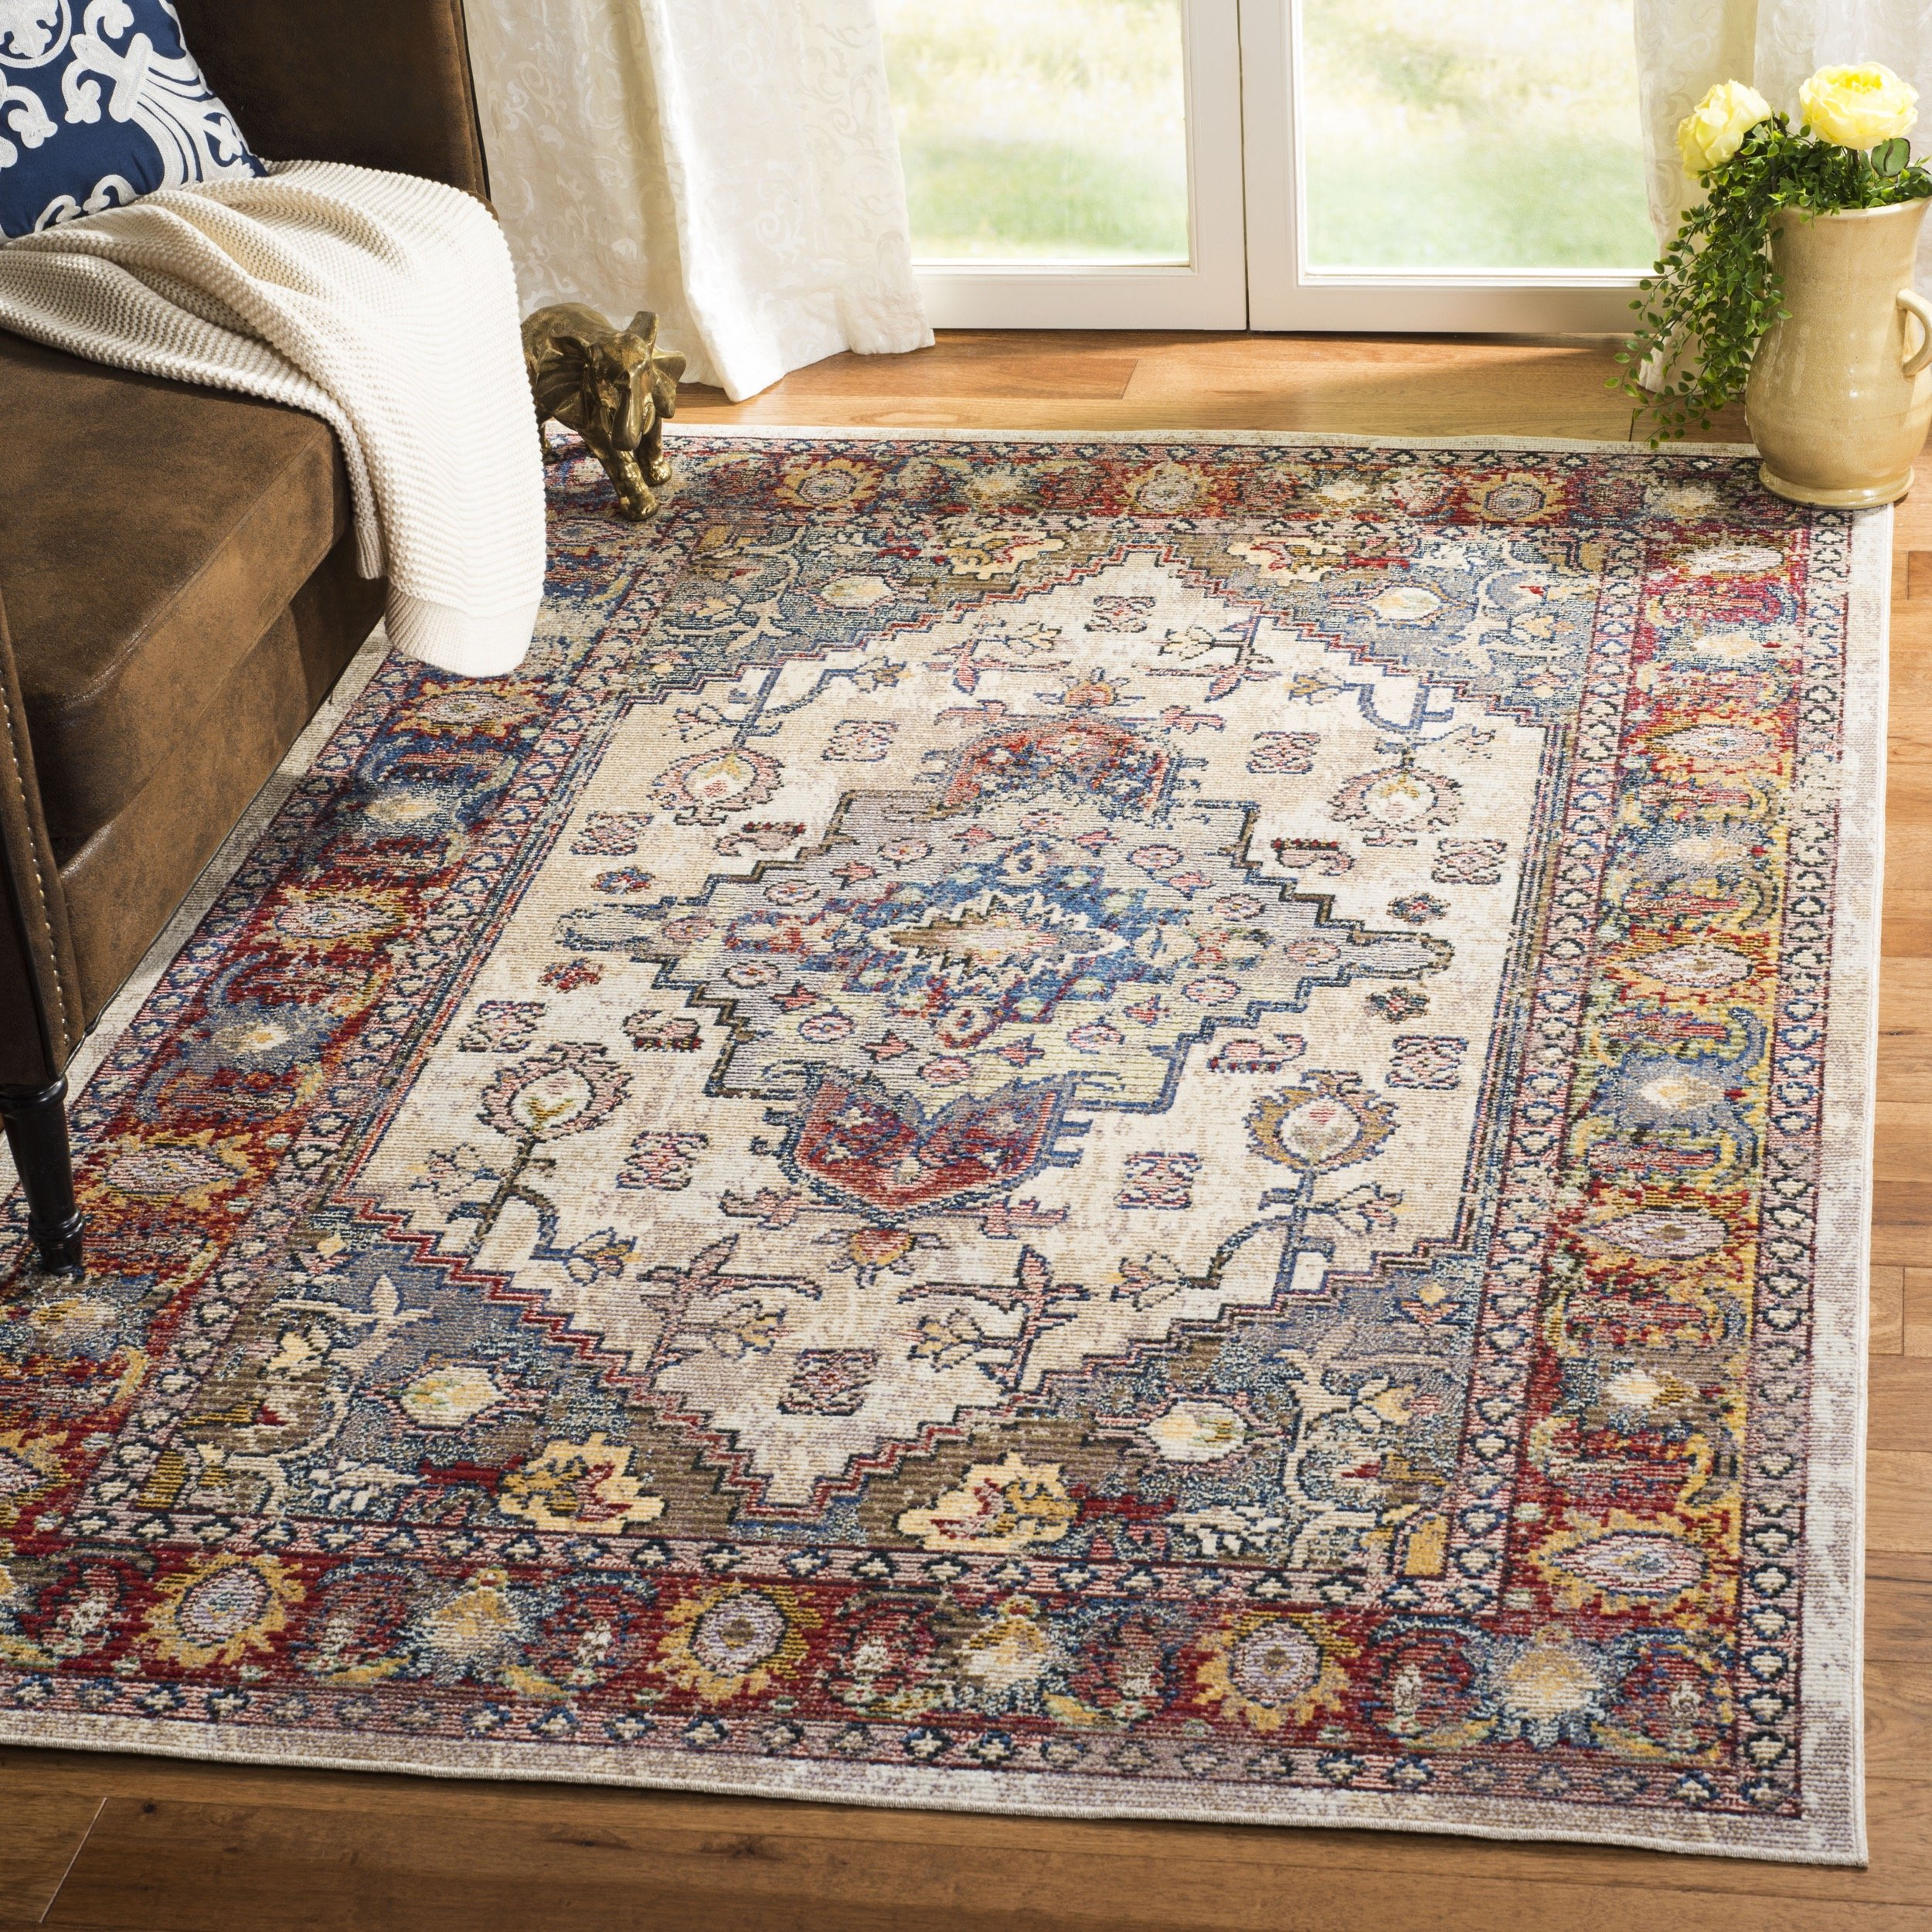 Safavieh Harmony Collection HMY404B Light Grey and Rose Area Rug (8' x 10') by Safavieh